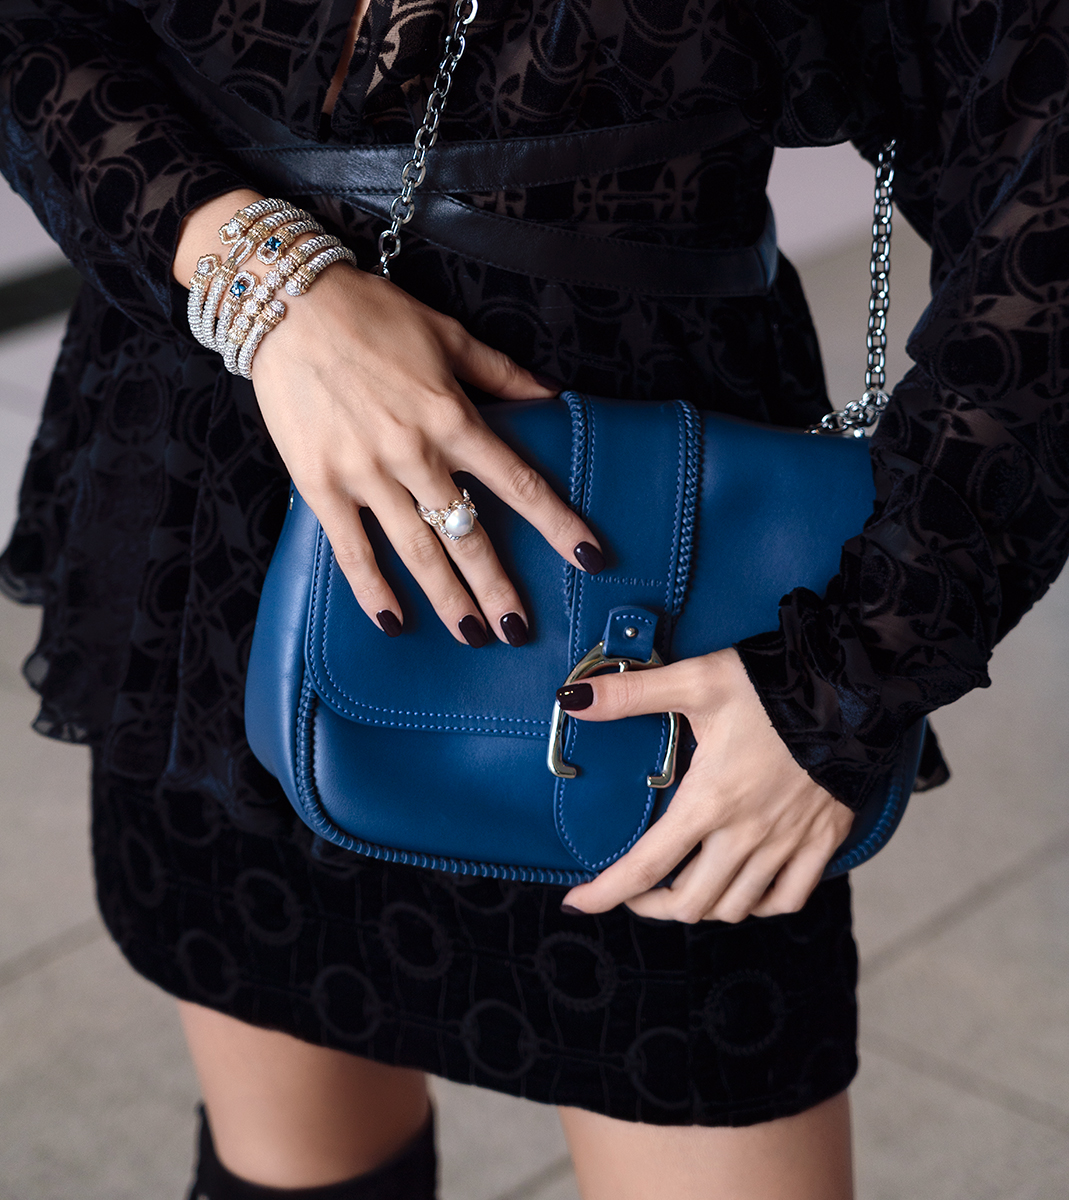 Longchamp's Amazone bag is the perfect fall accessory. Accessorised with Vahan's stacking bracelets and ring - great statement pieces to wear for any holiday party.